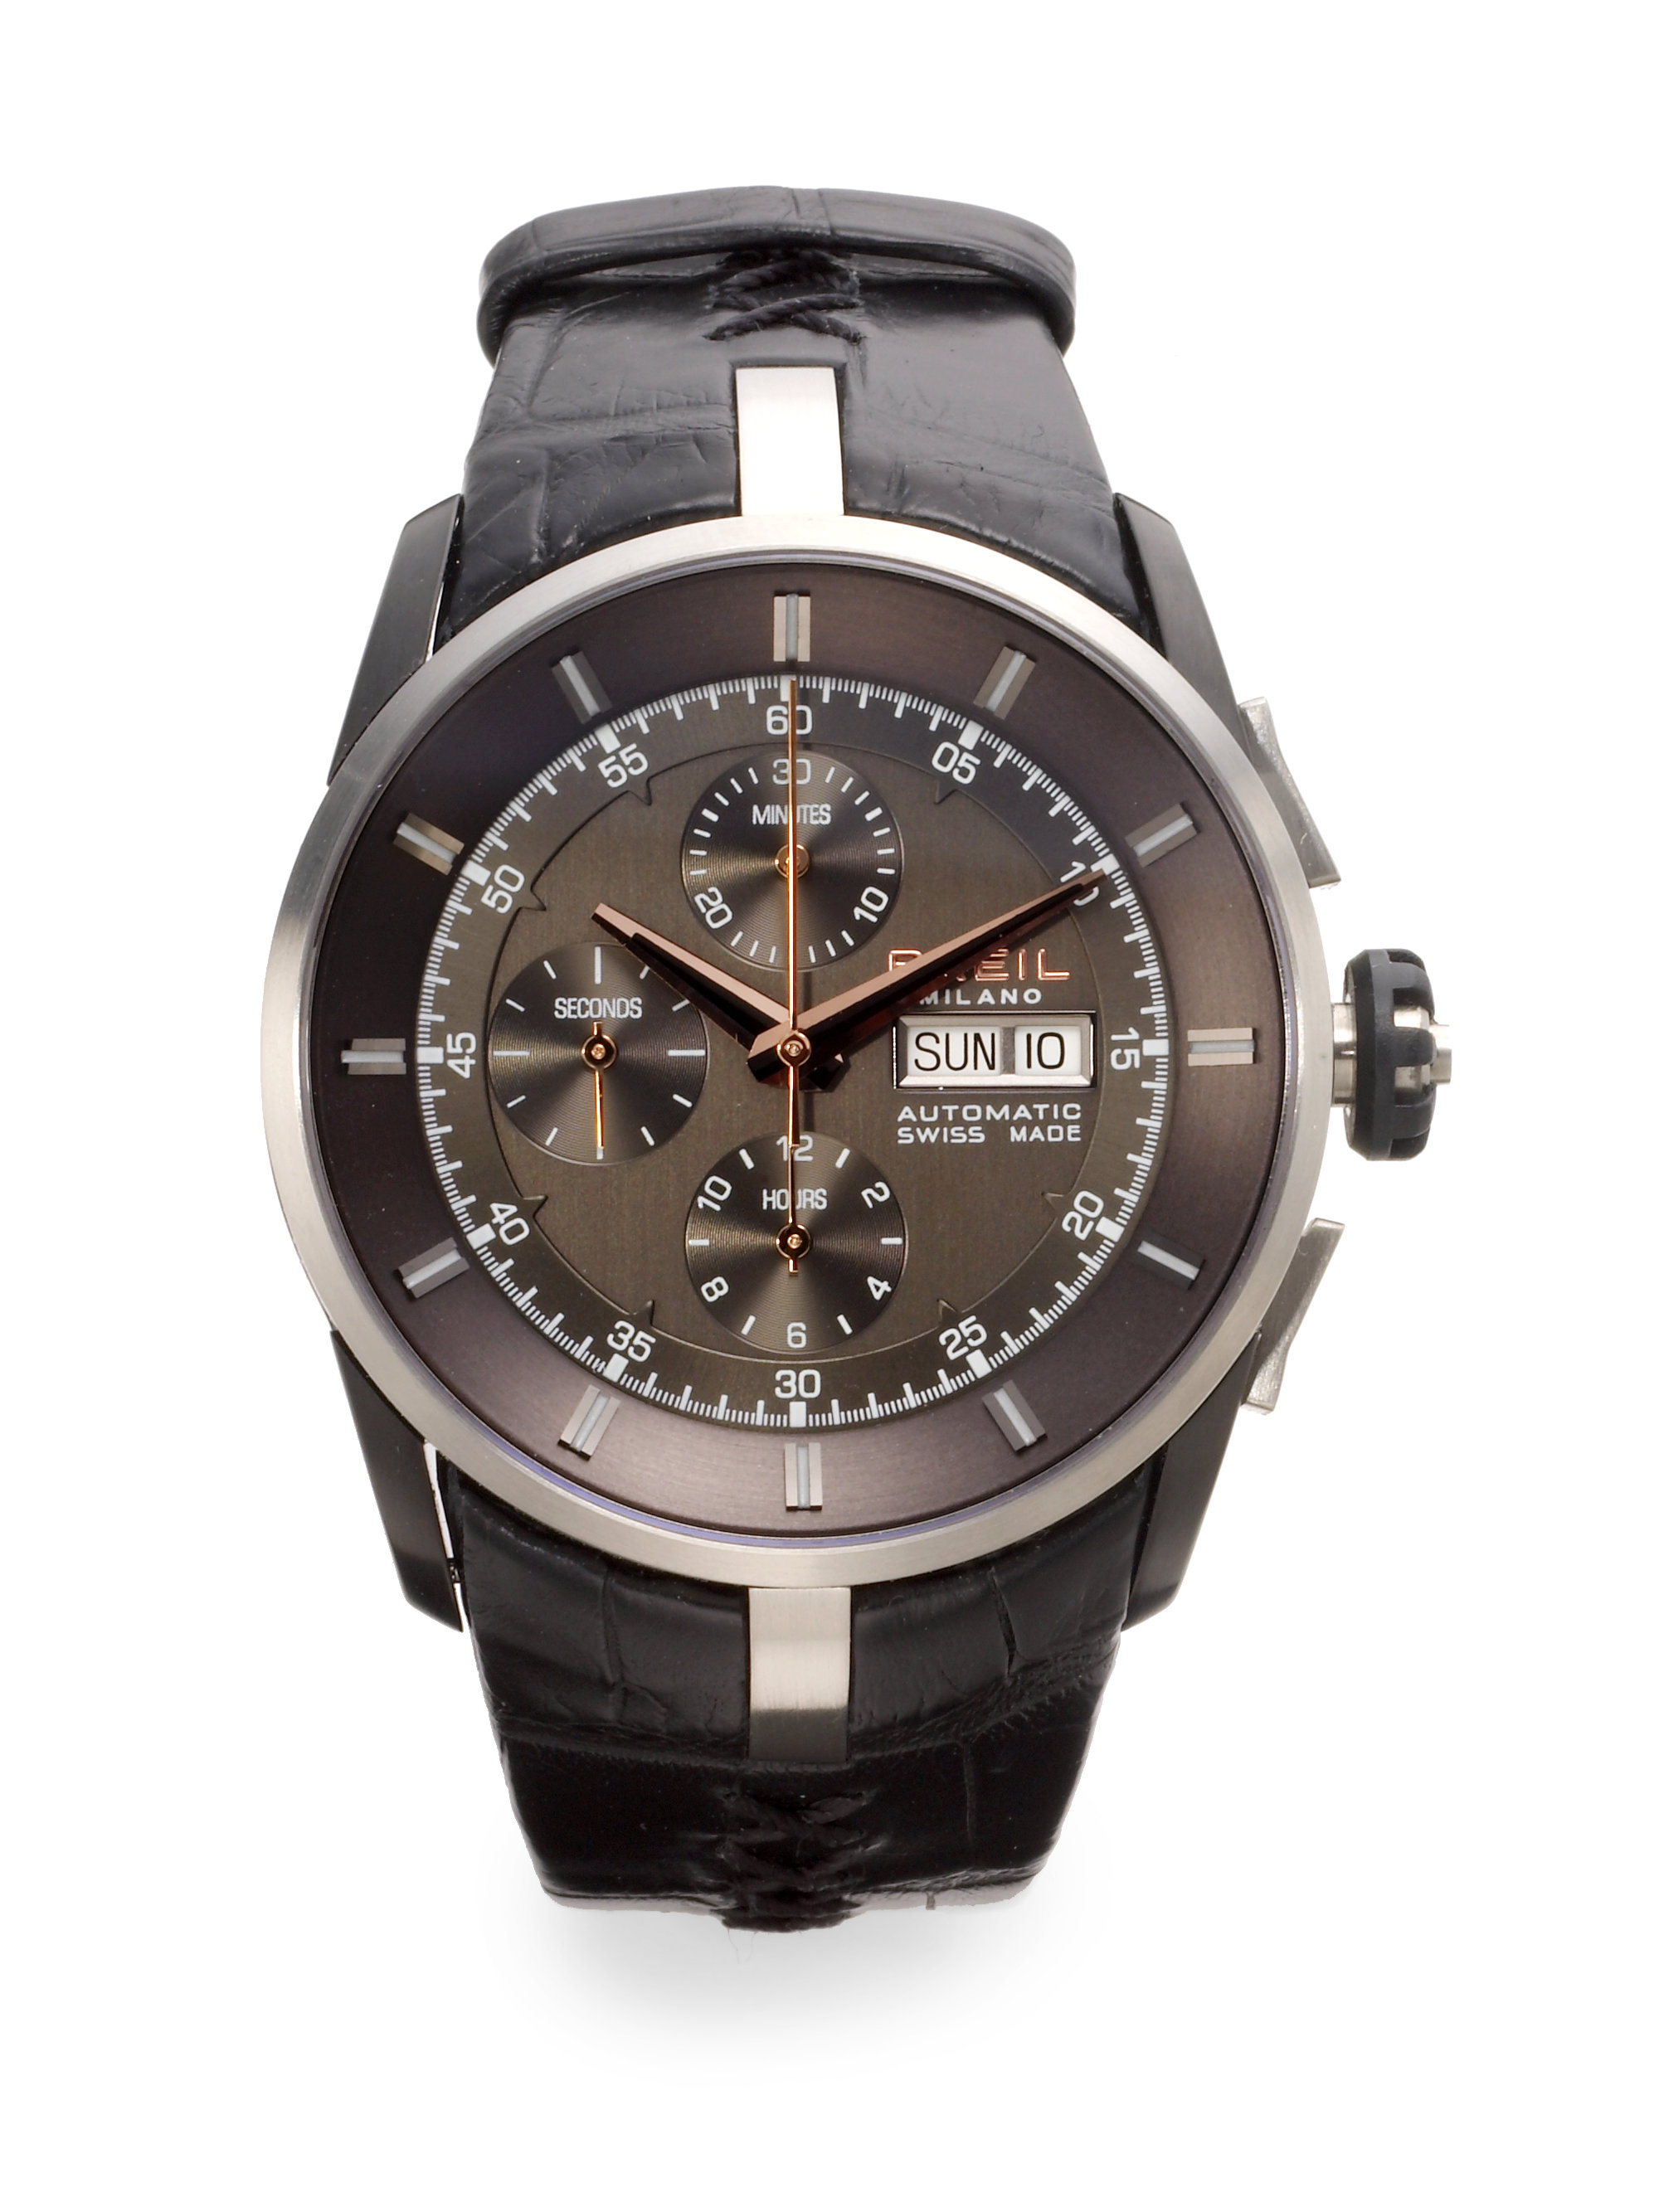 at crocodile watches com watch reign viomart xavier mens